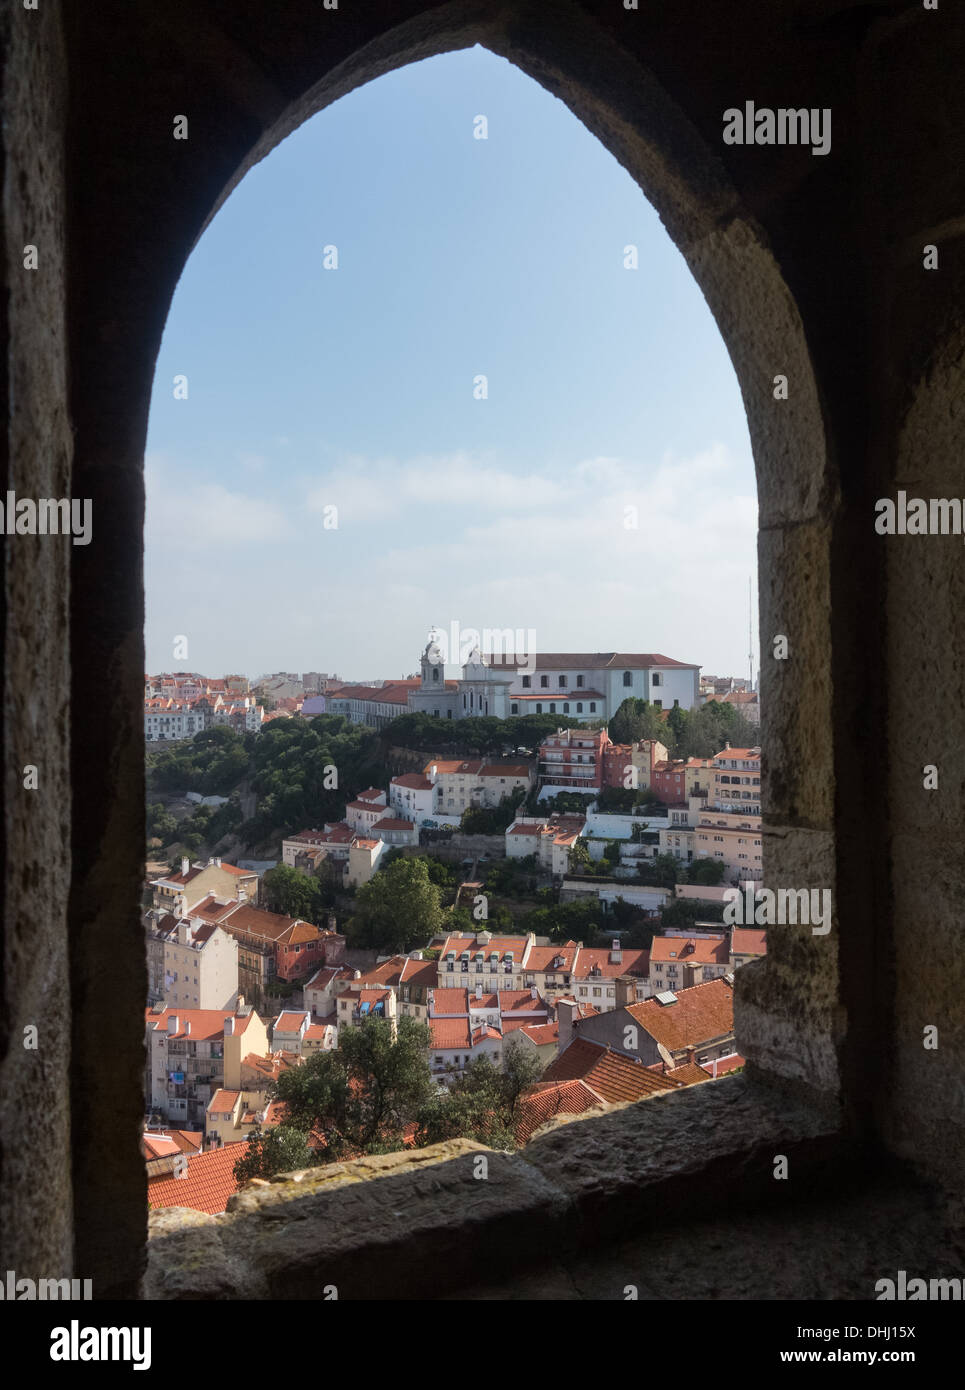 Old houses and roofs of the Alfama district of Lisbon in Portugal. Taken from Castle of Sao Jorge or St George. - Stock Image